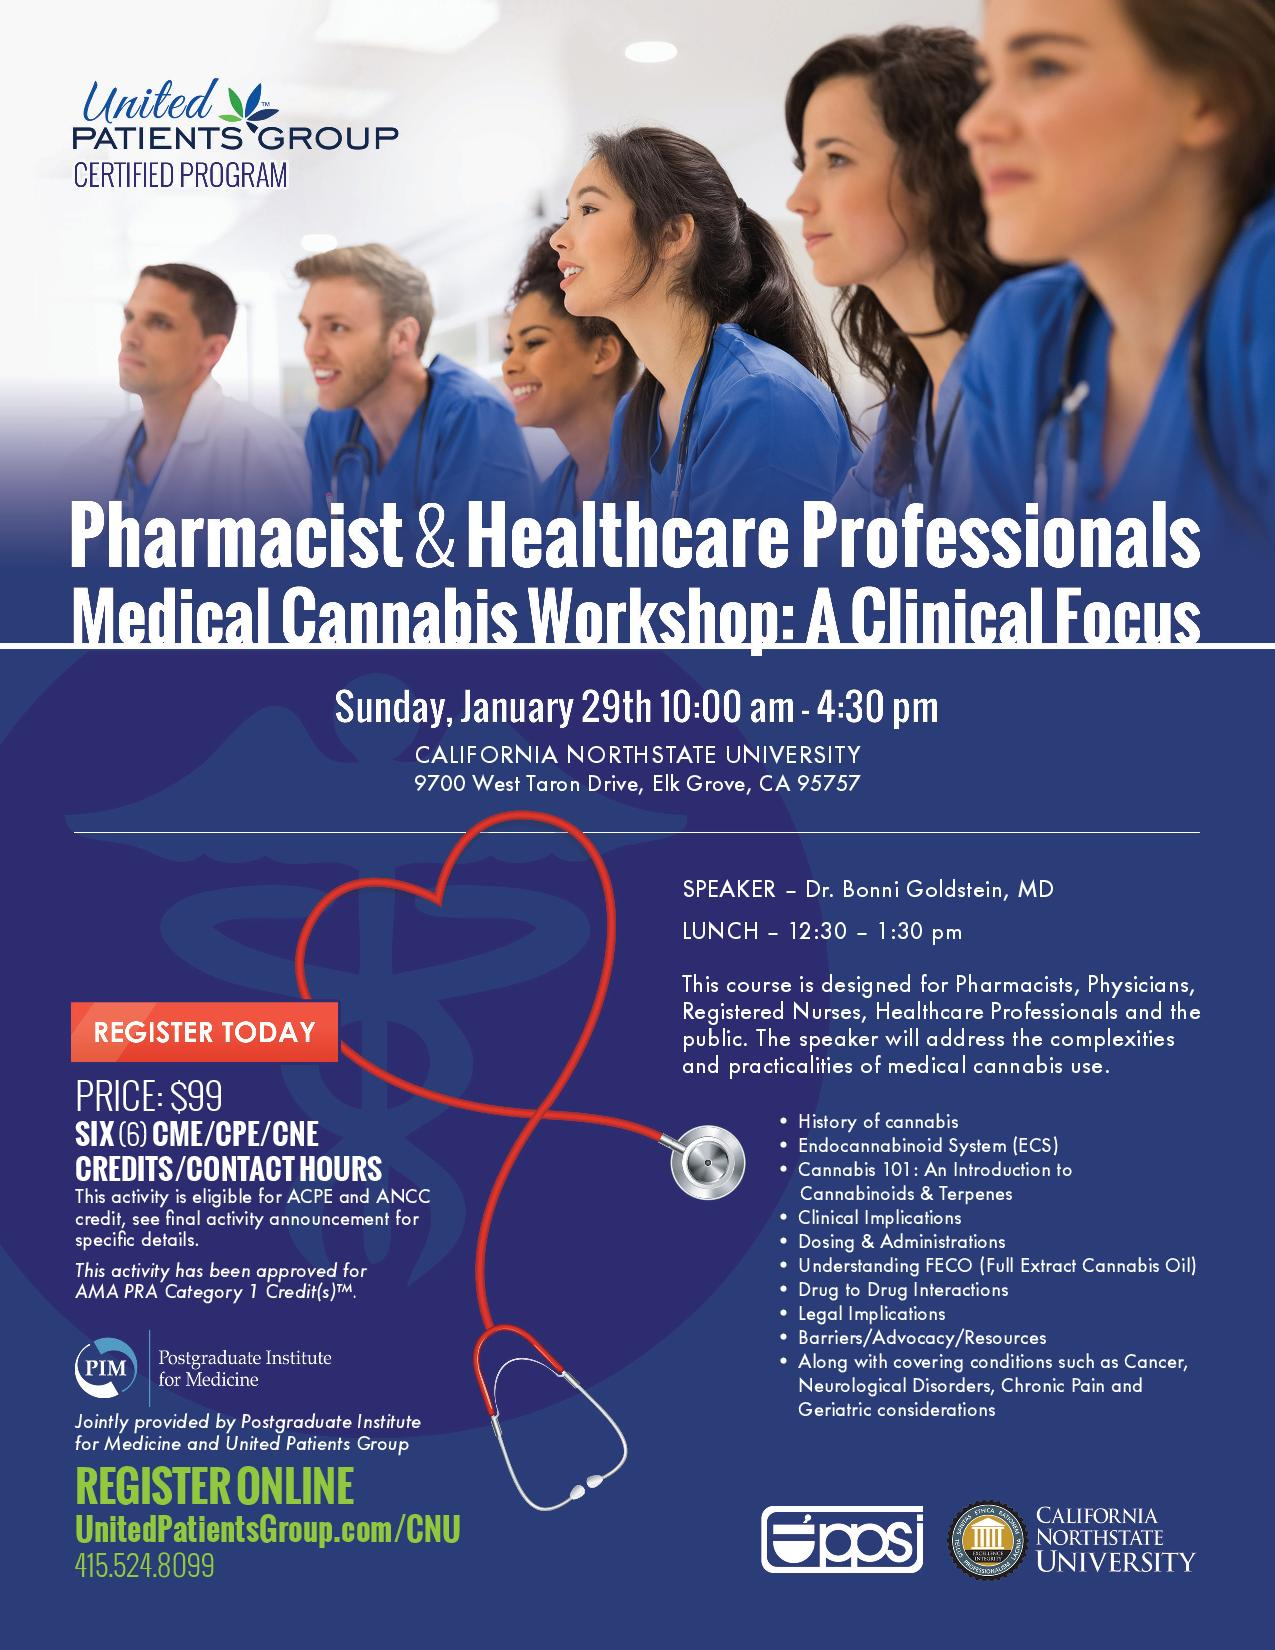 Pharmacist & Healthcare Professionals Medical Cannabis Workshop: Medical Education